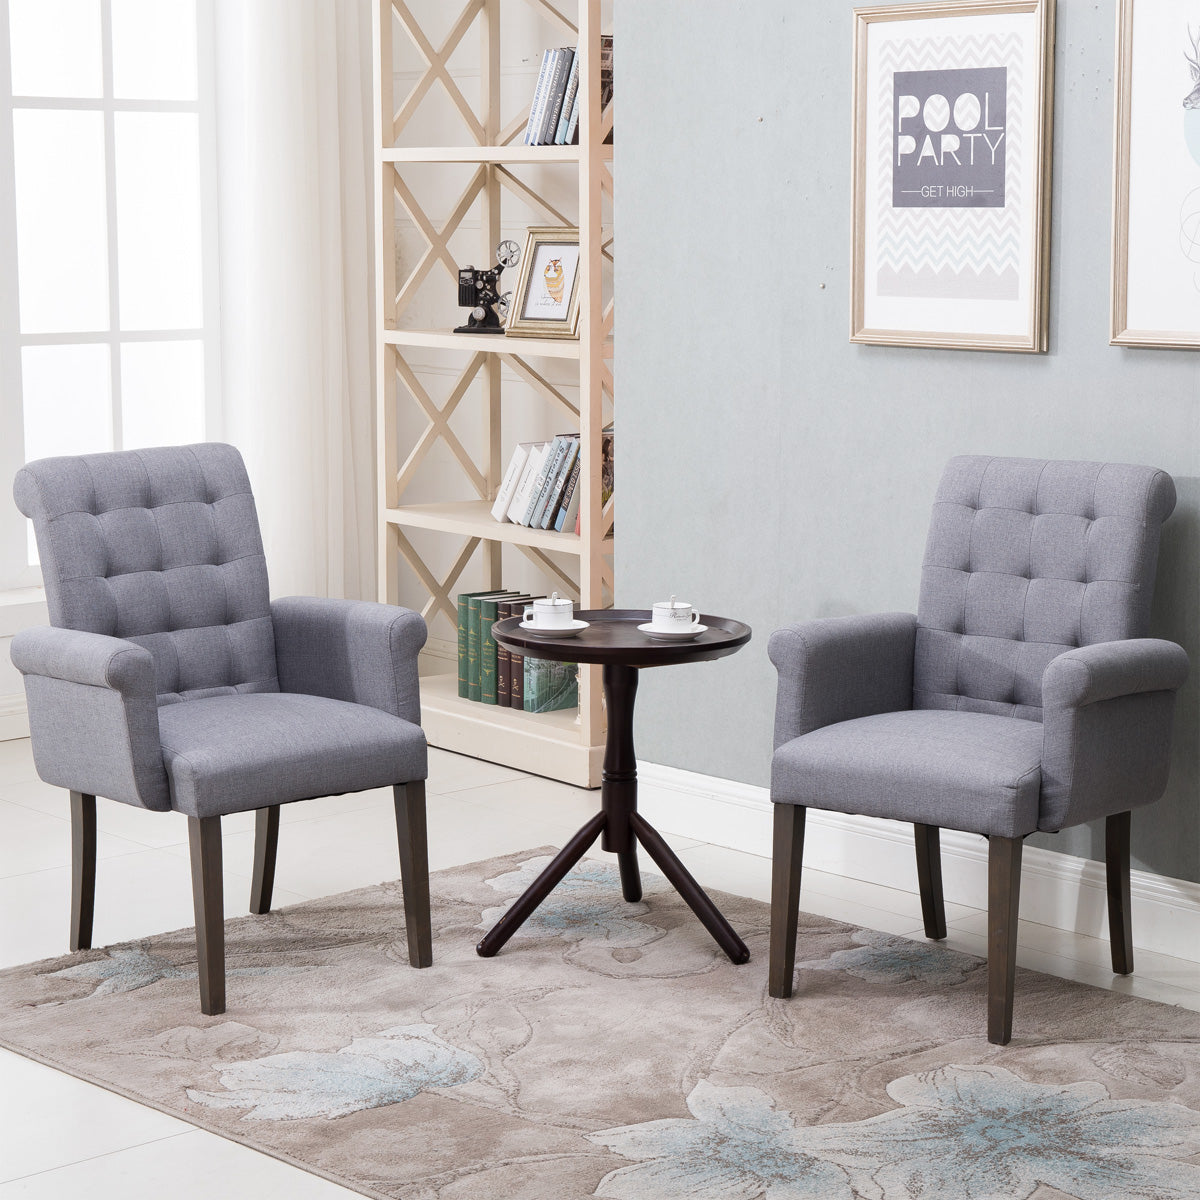 CAMANDE Fabric Tufted Dining Chair Accent Chair with Armrest and Solid Wood Legs (Grey)